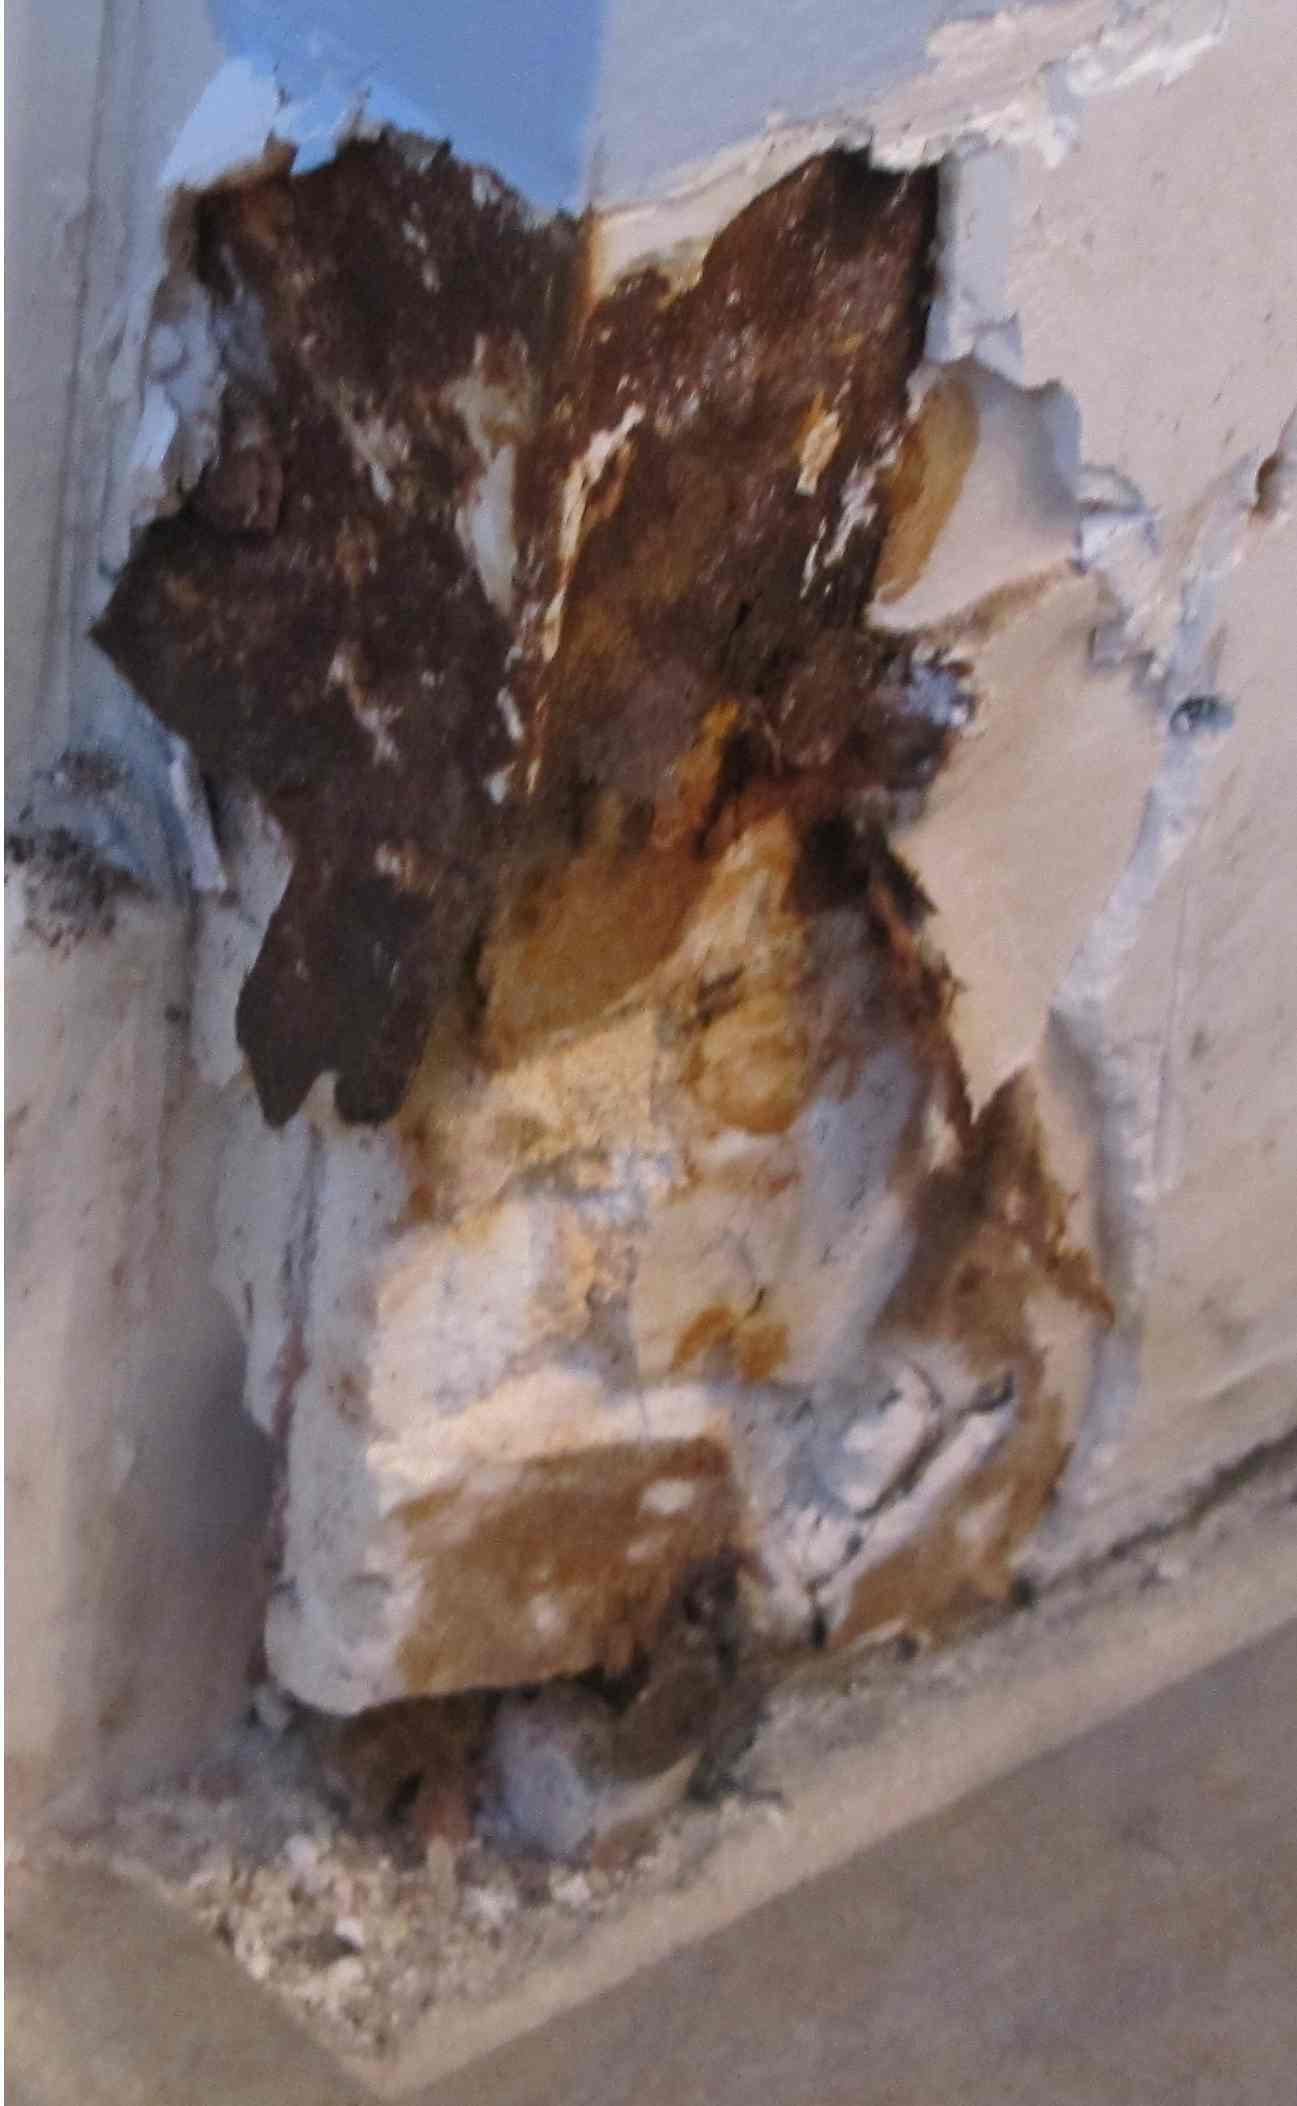 Repair Outside Corner Drywall in Bath-bathroom.jpg